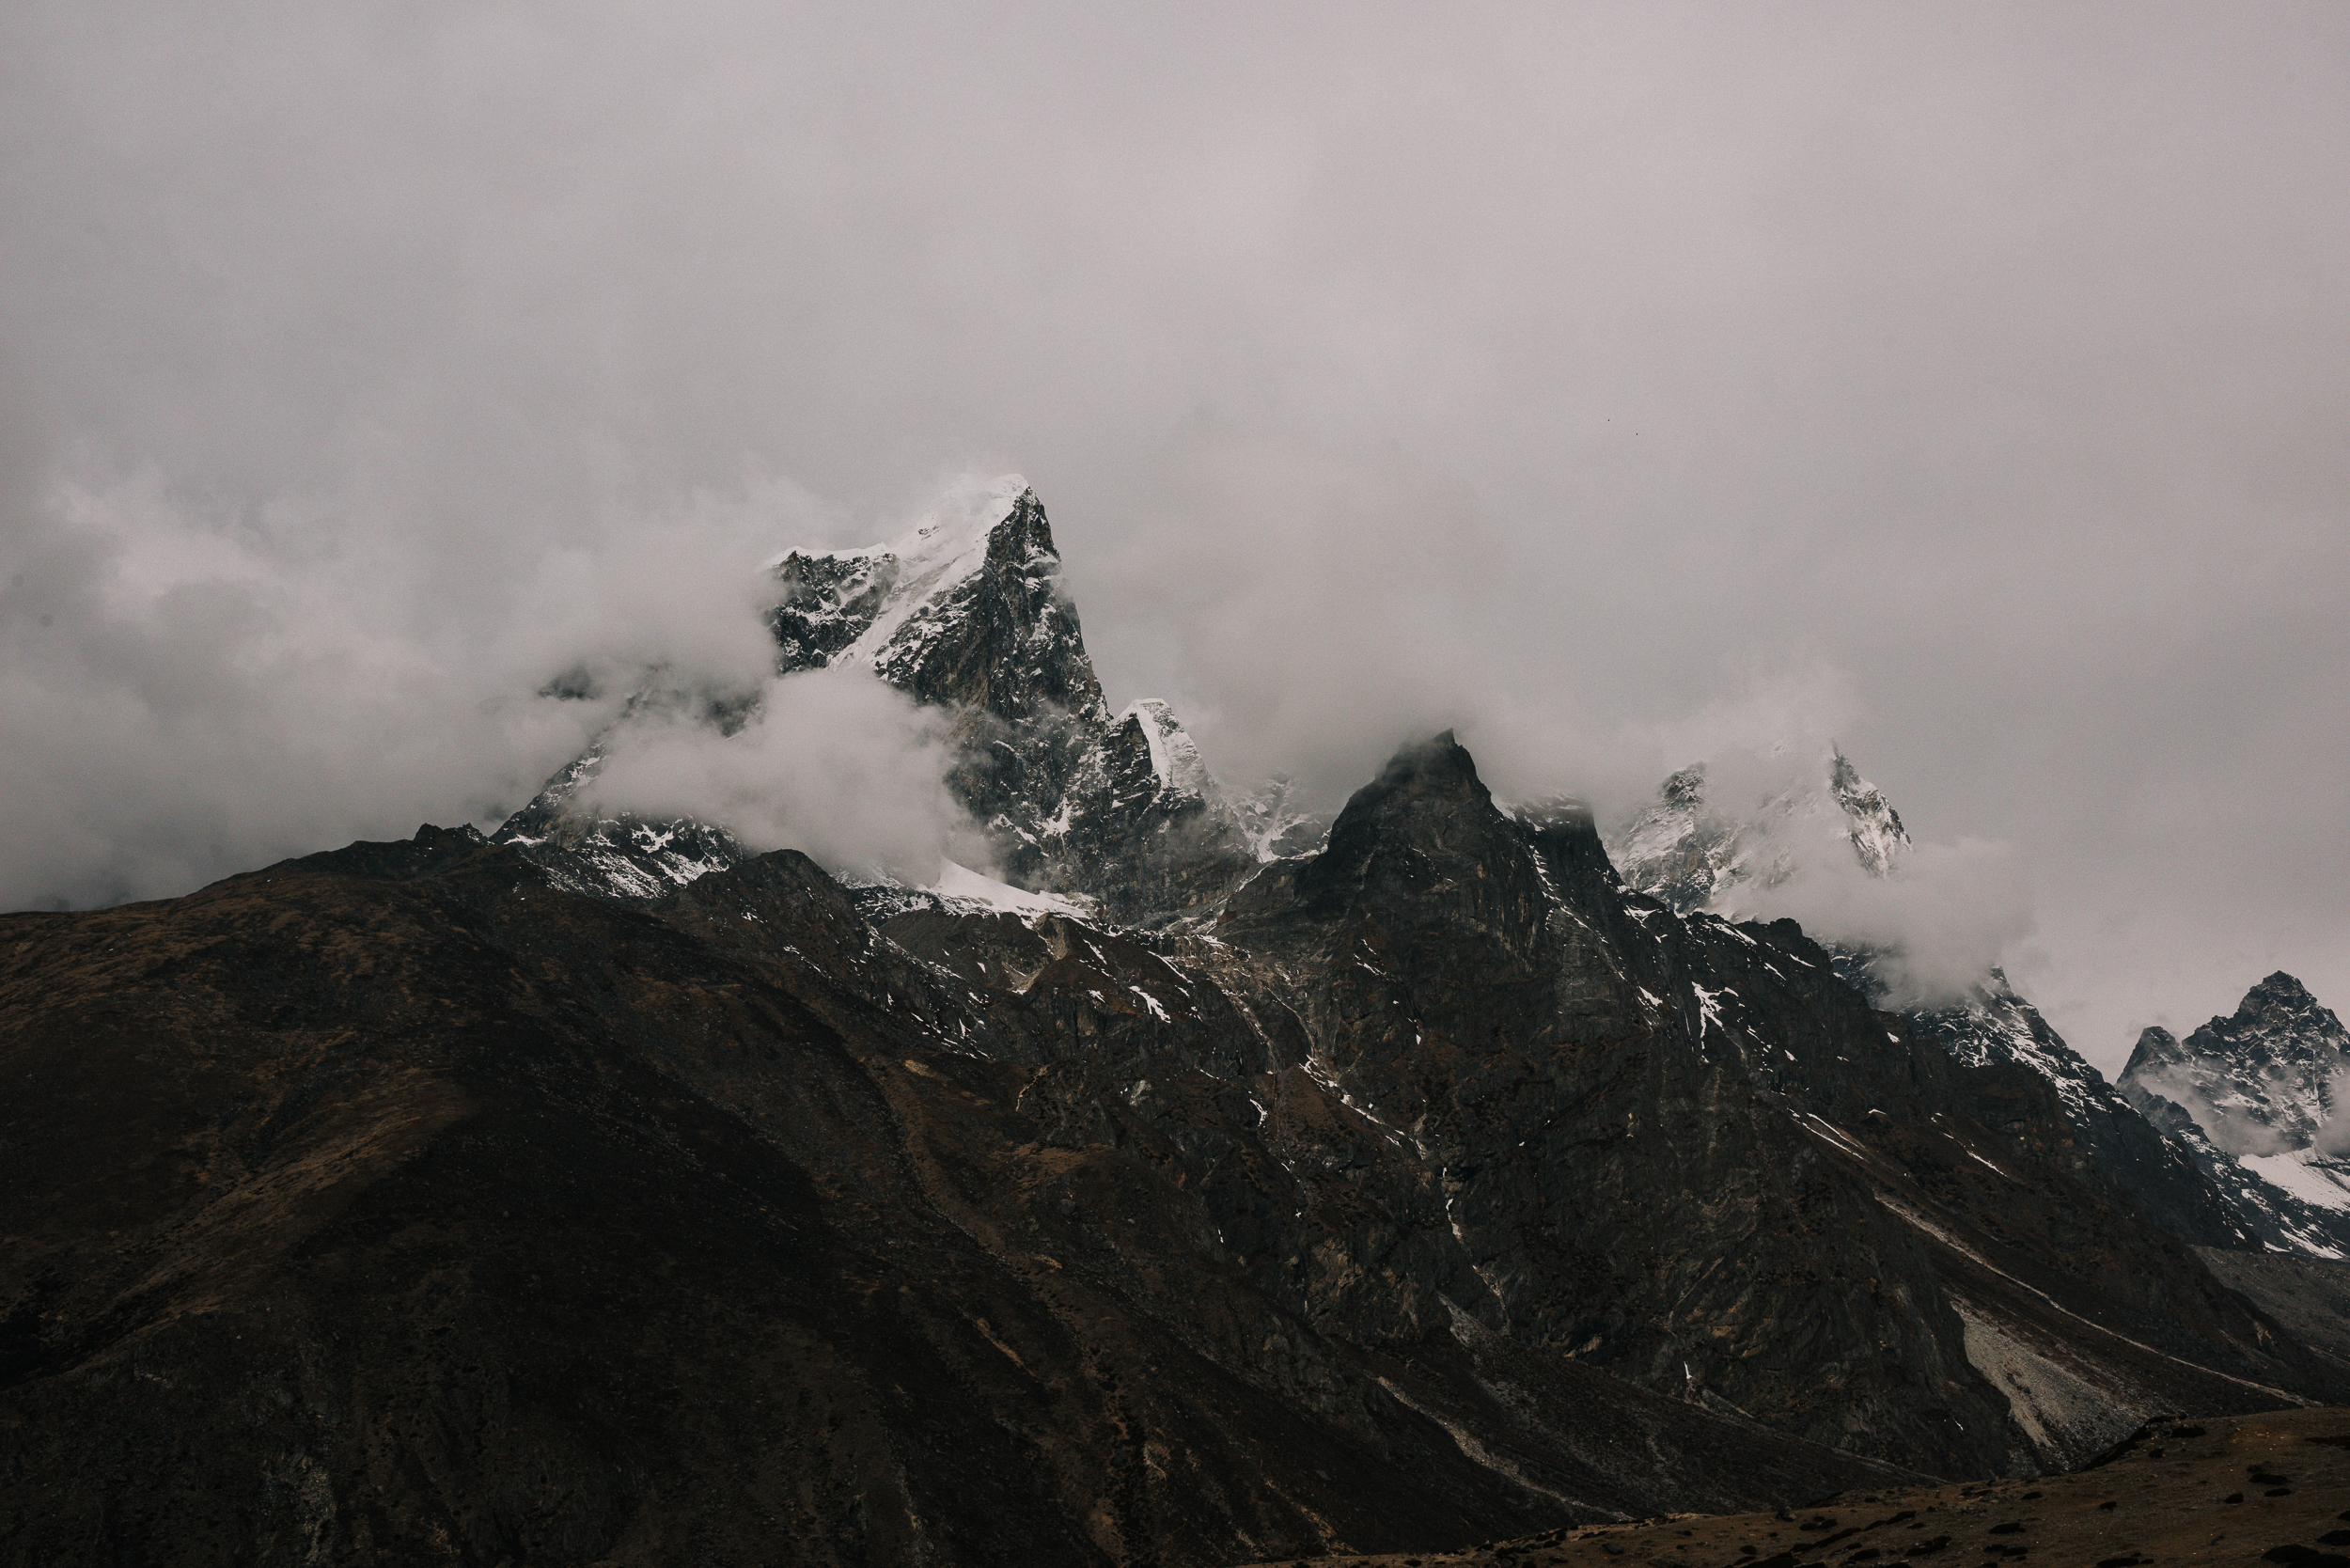 Nepal_EverestBaseCamp_2019_TaraShupe_Photography_DSC_3967.jpg